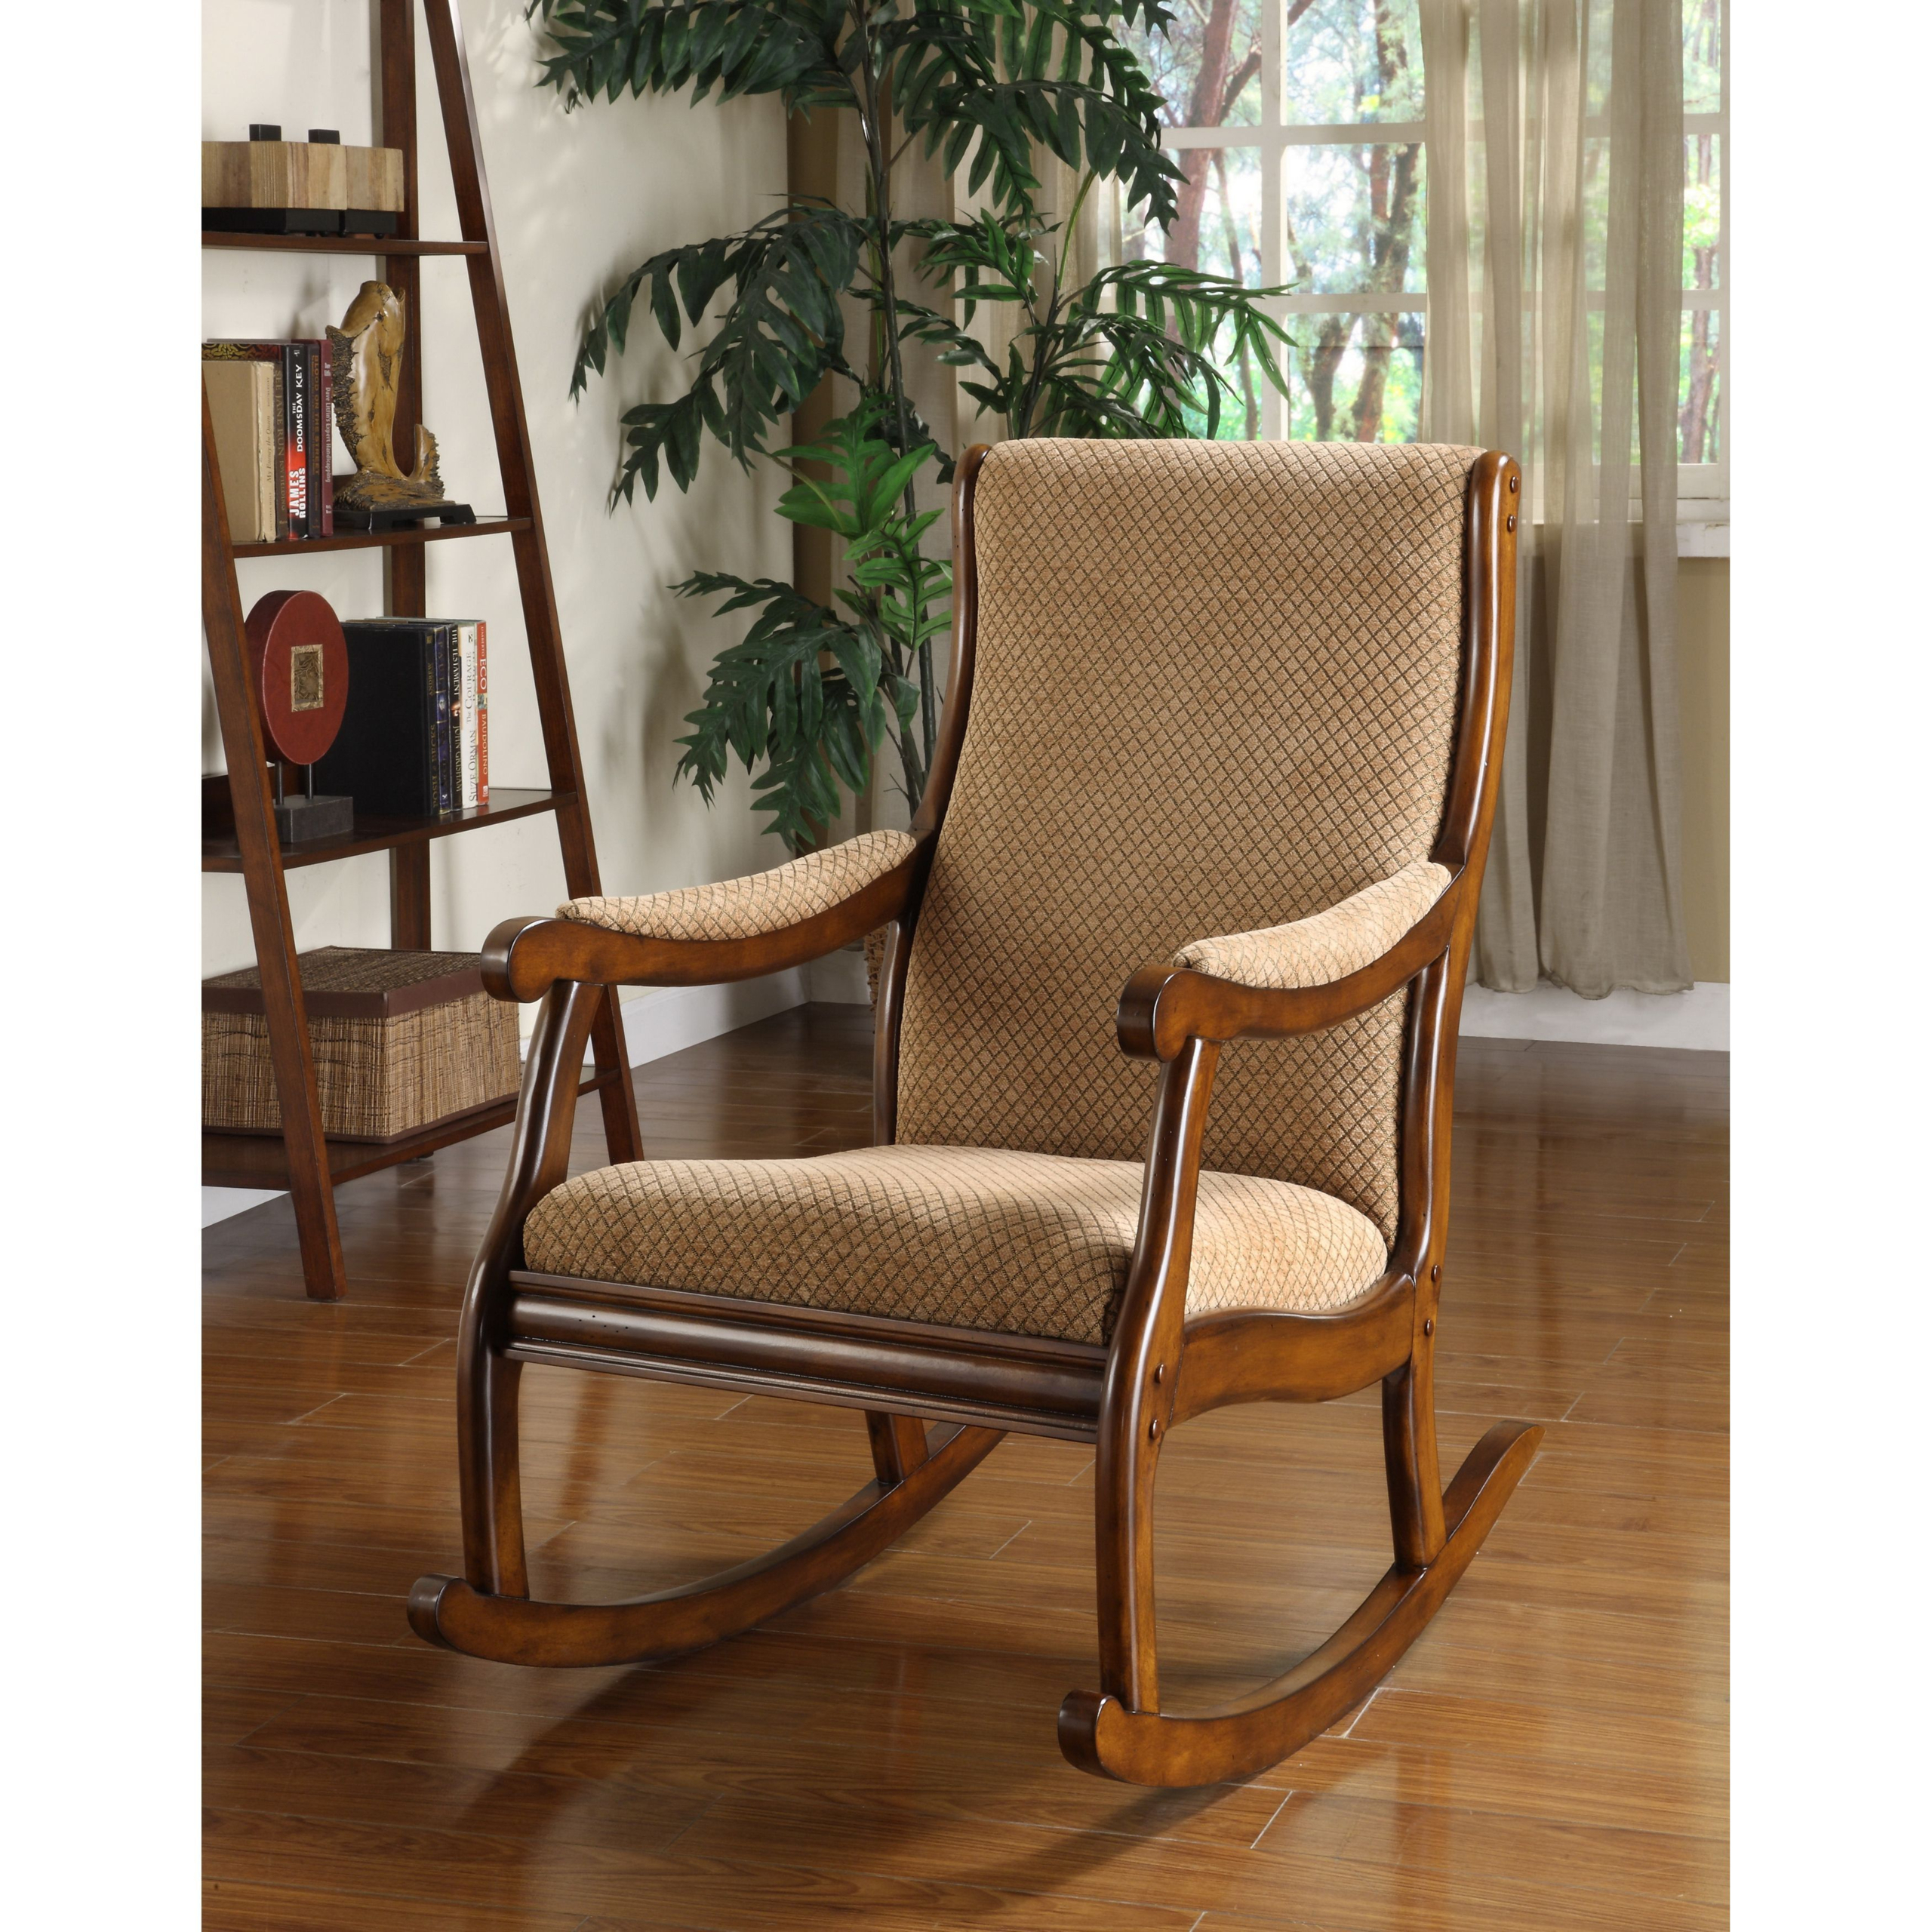 Affordable modern rocking chair